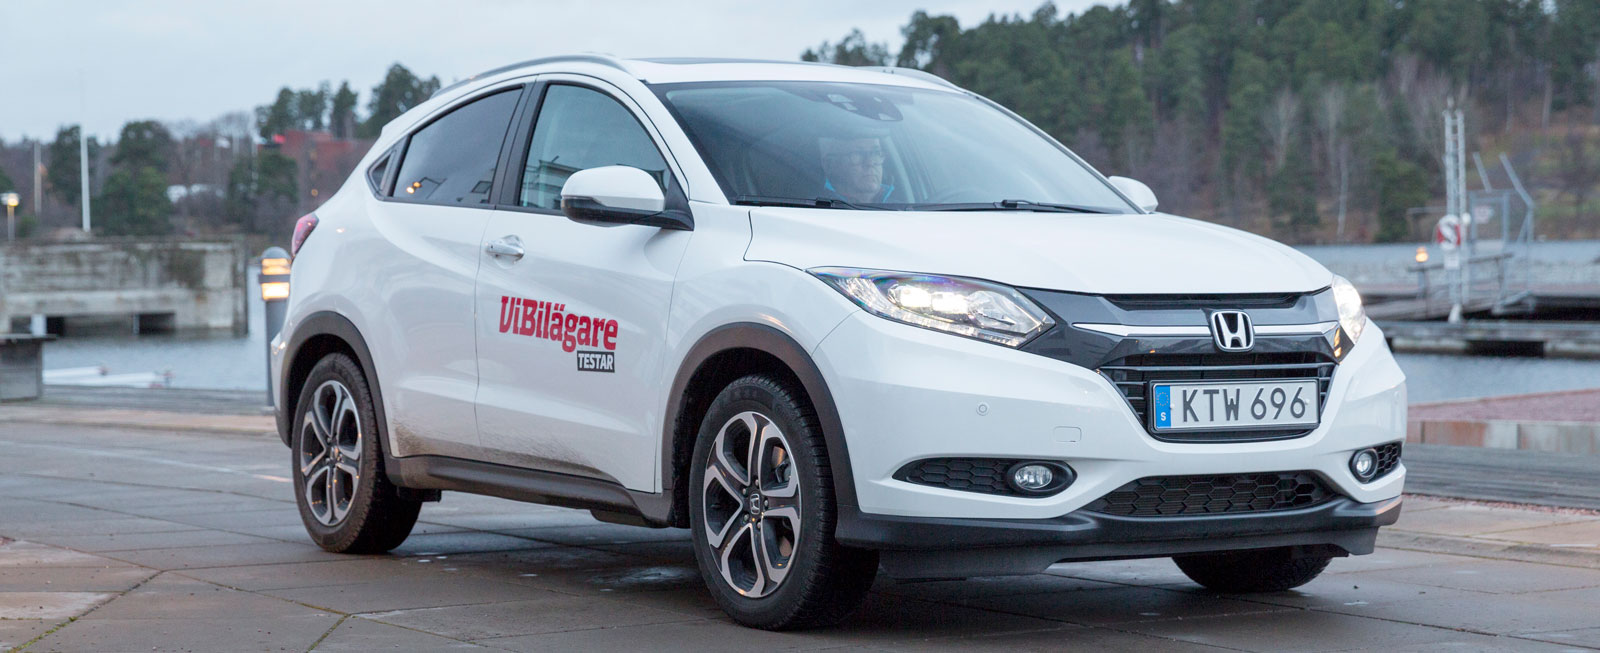 Honda HR-V I-DTEC Exclusive